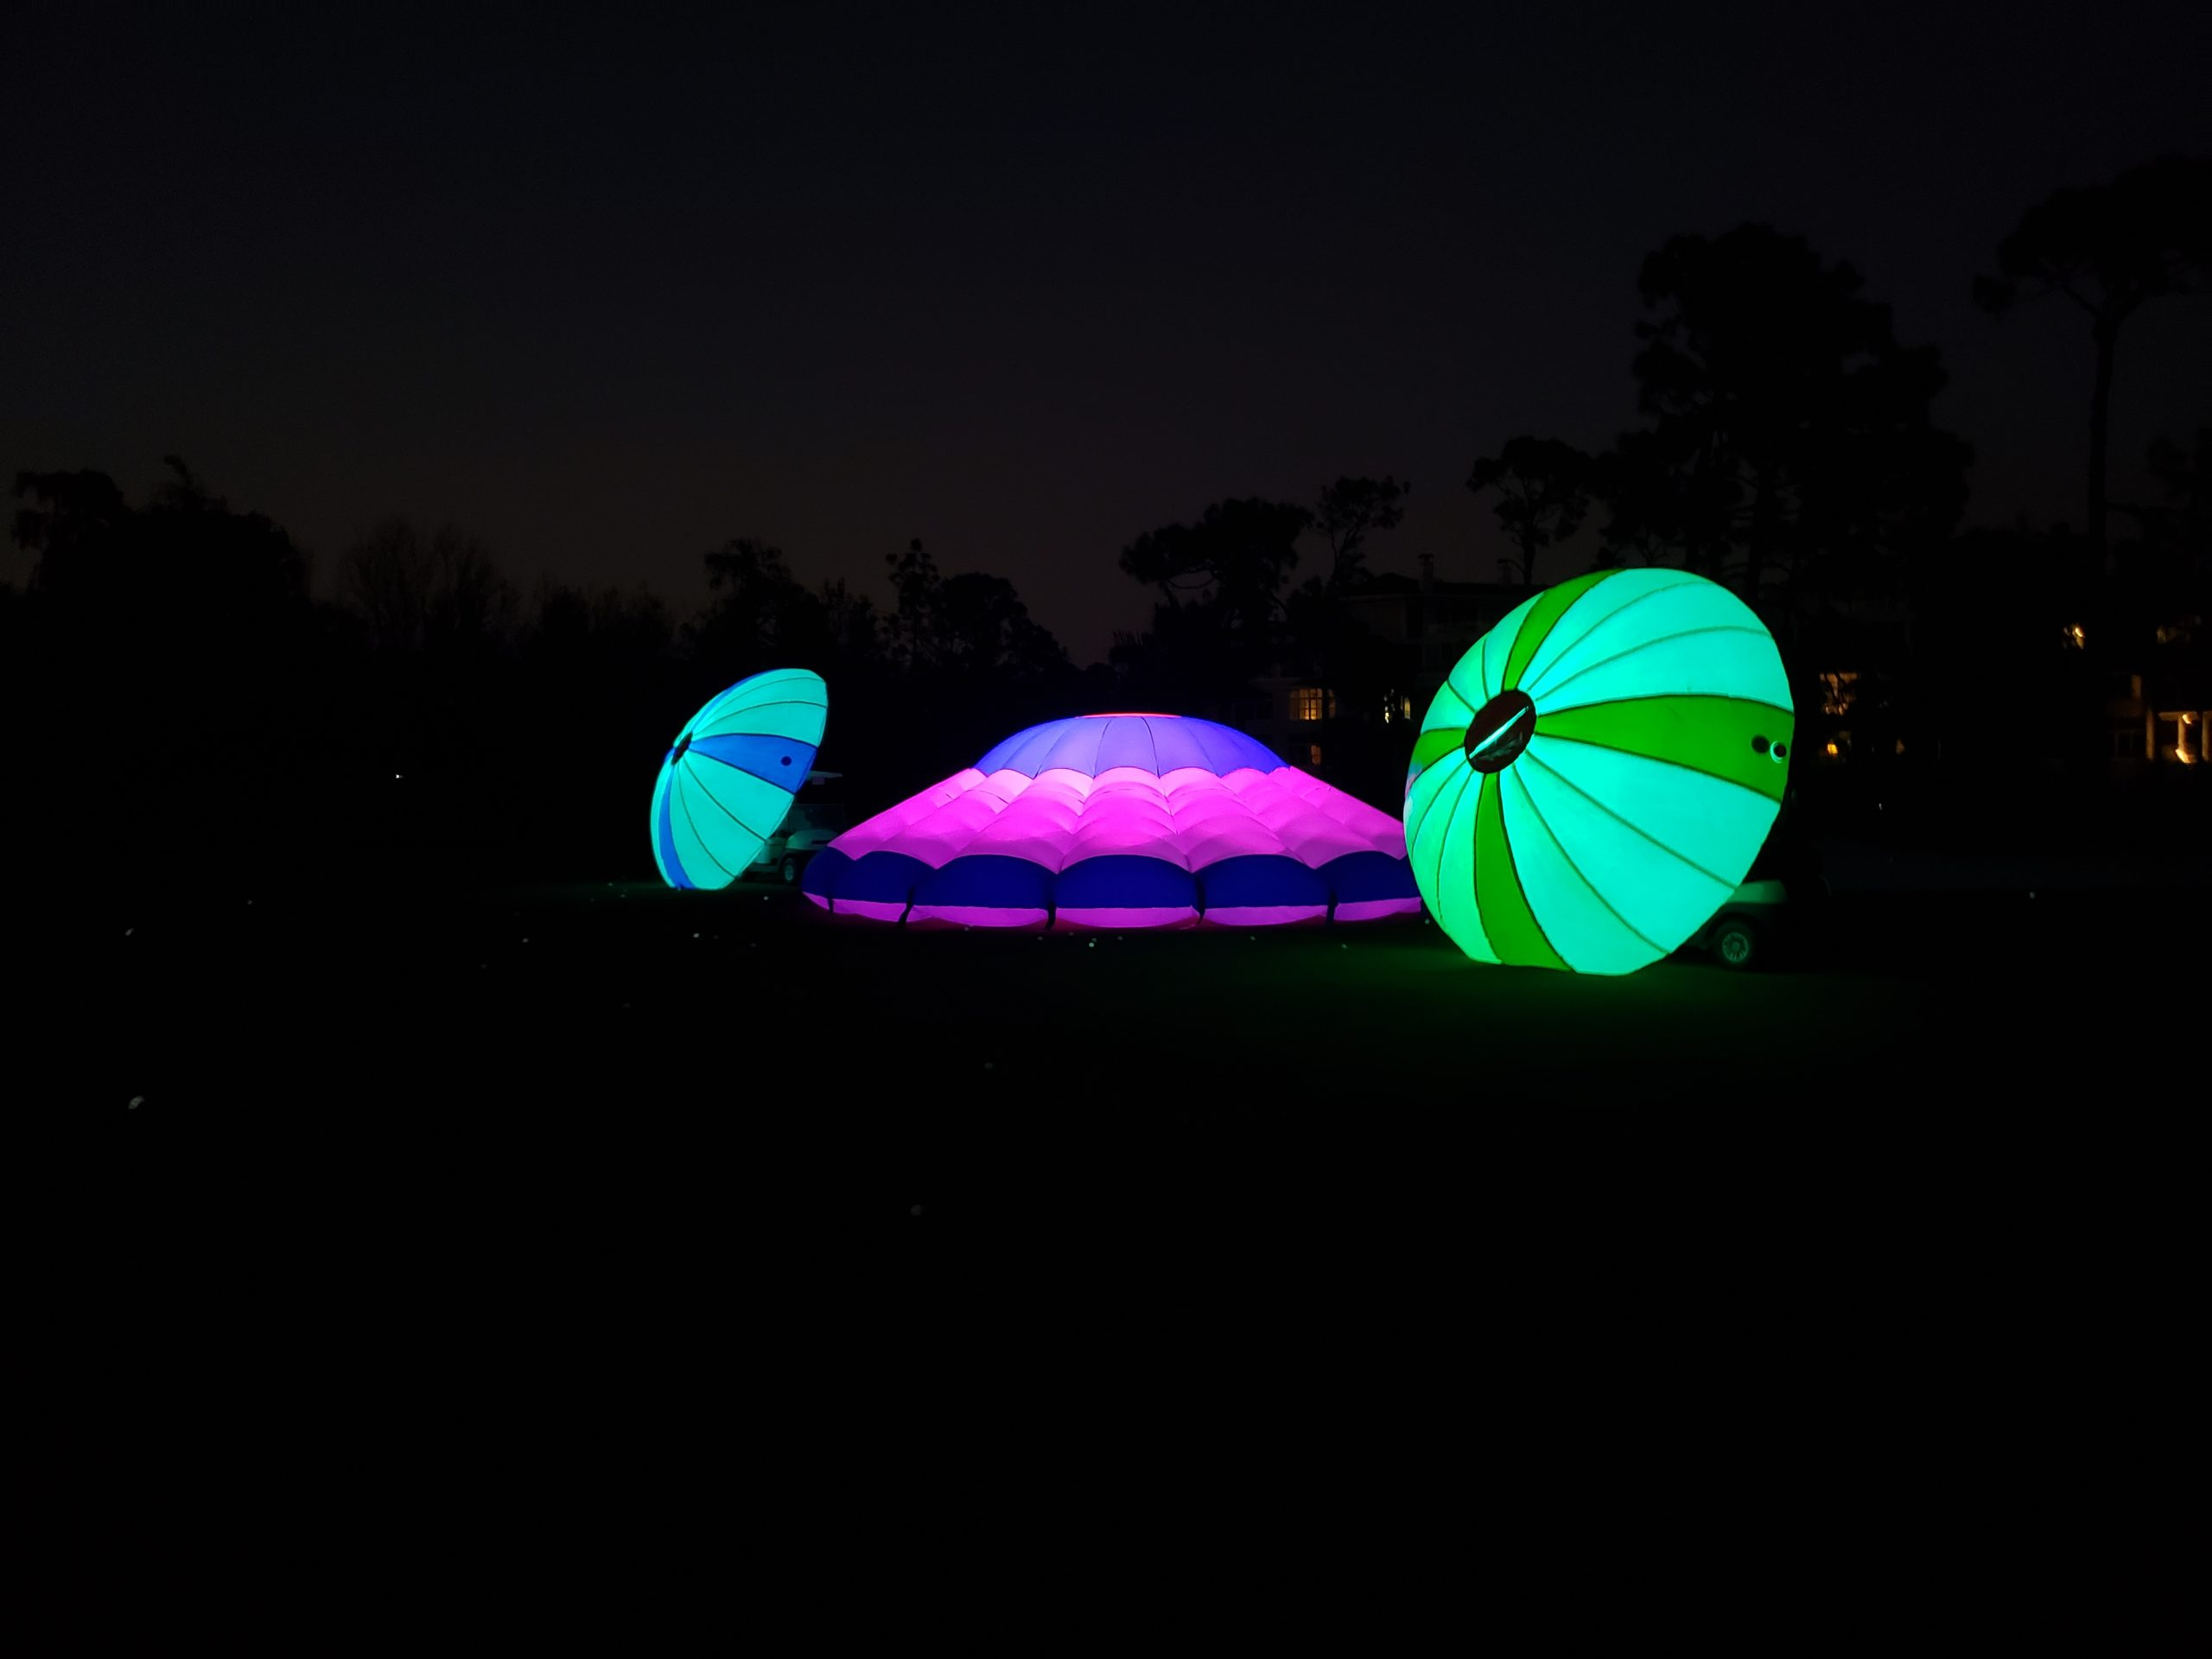 Mobile driving range party targets at night